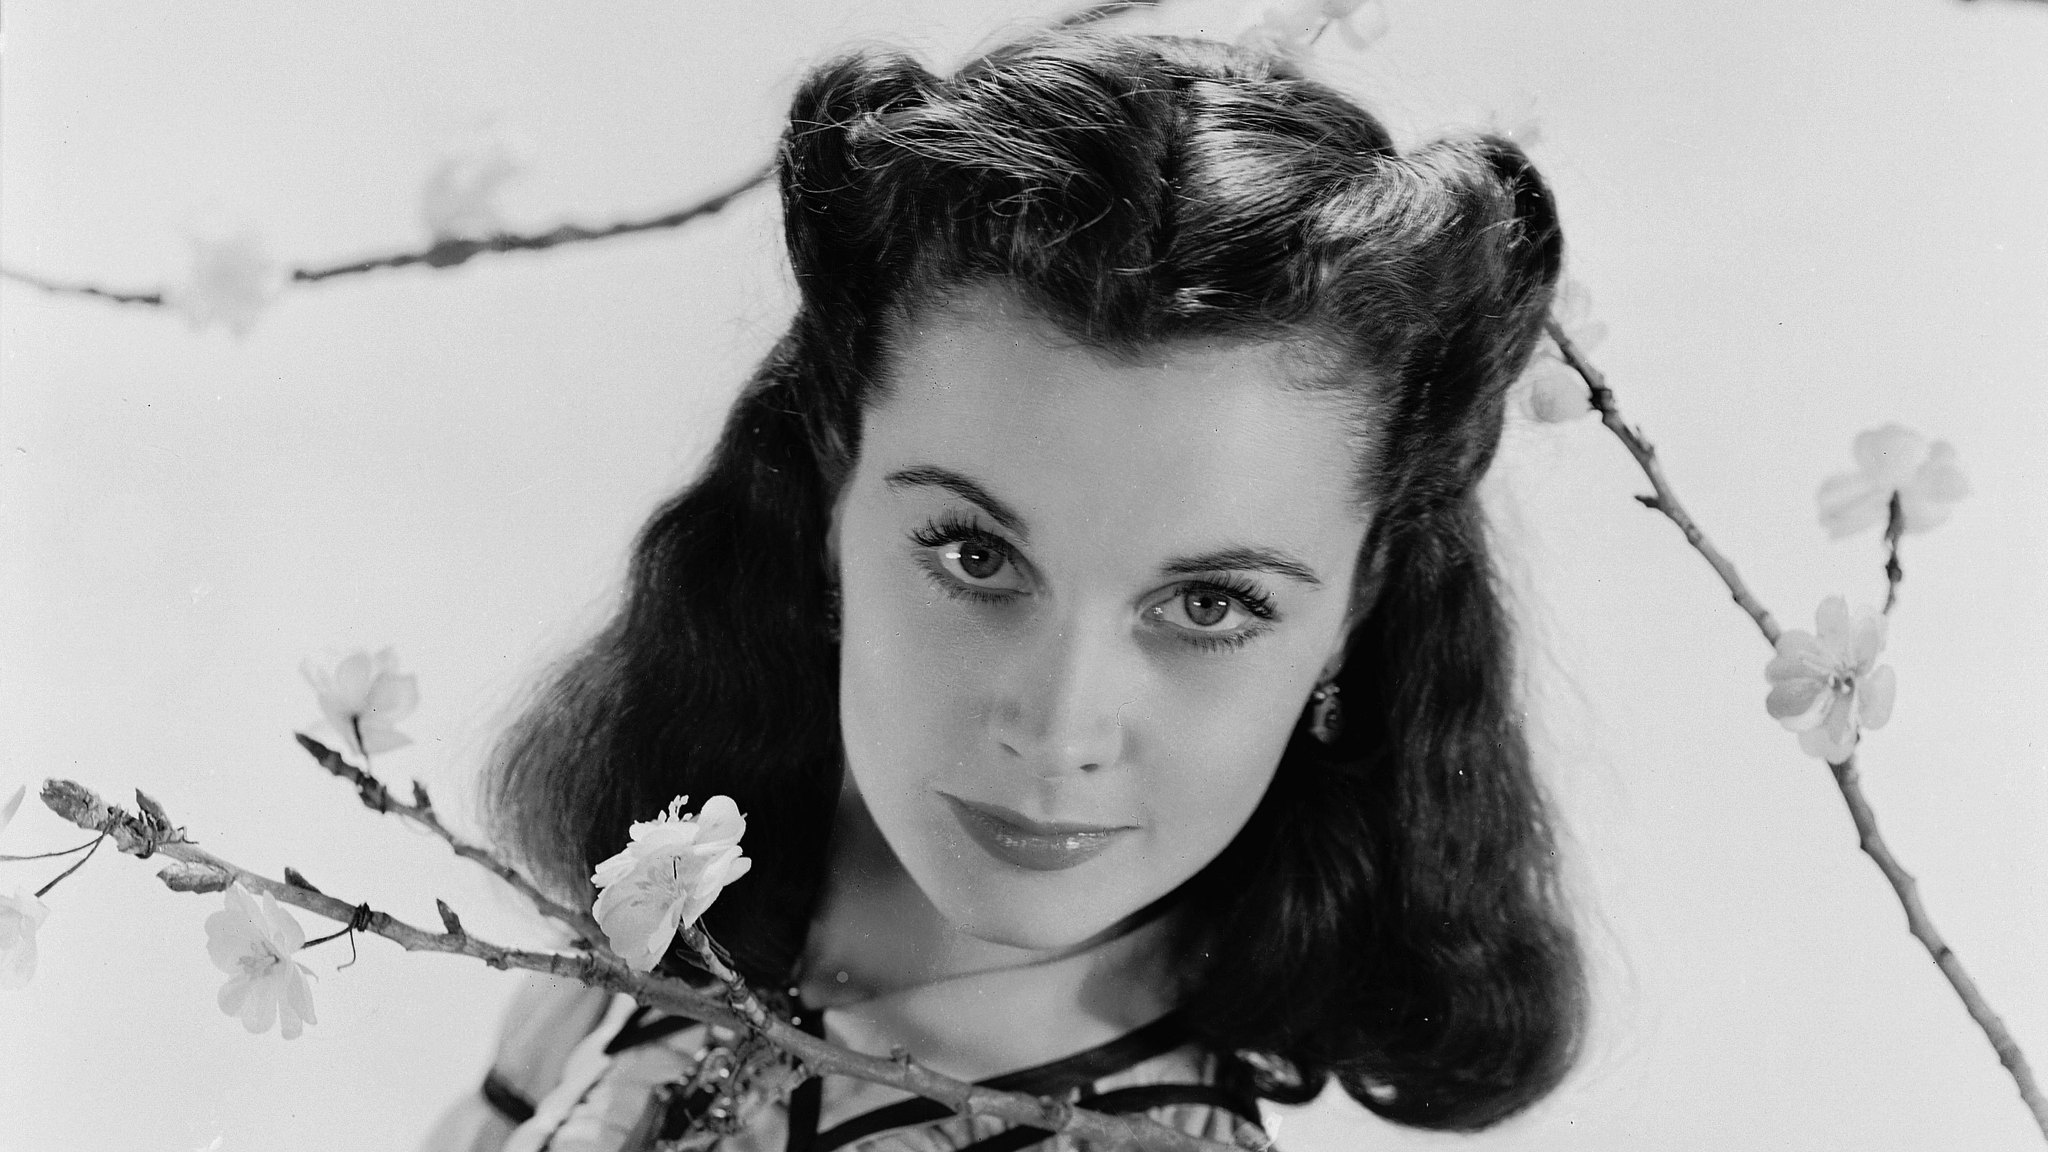 From the Archives: Vivien Leigh, 'Gone With the Wind' Star, Dies at 53 - LA Times